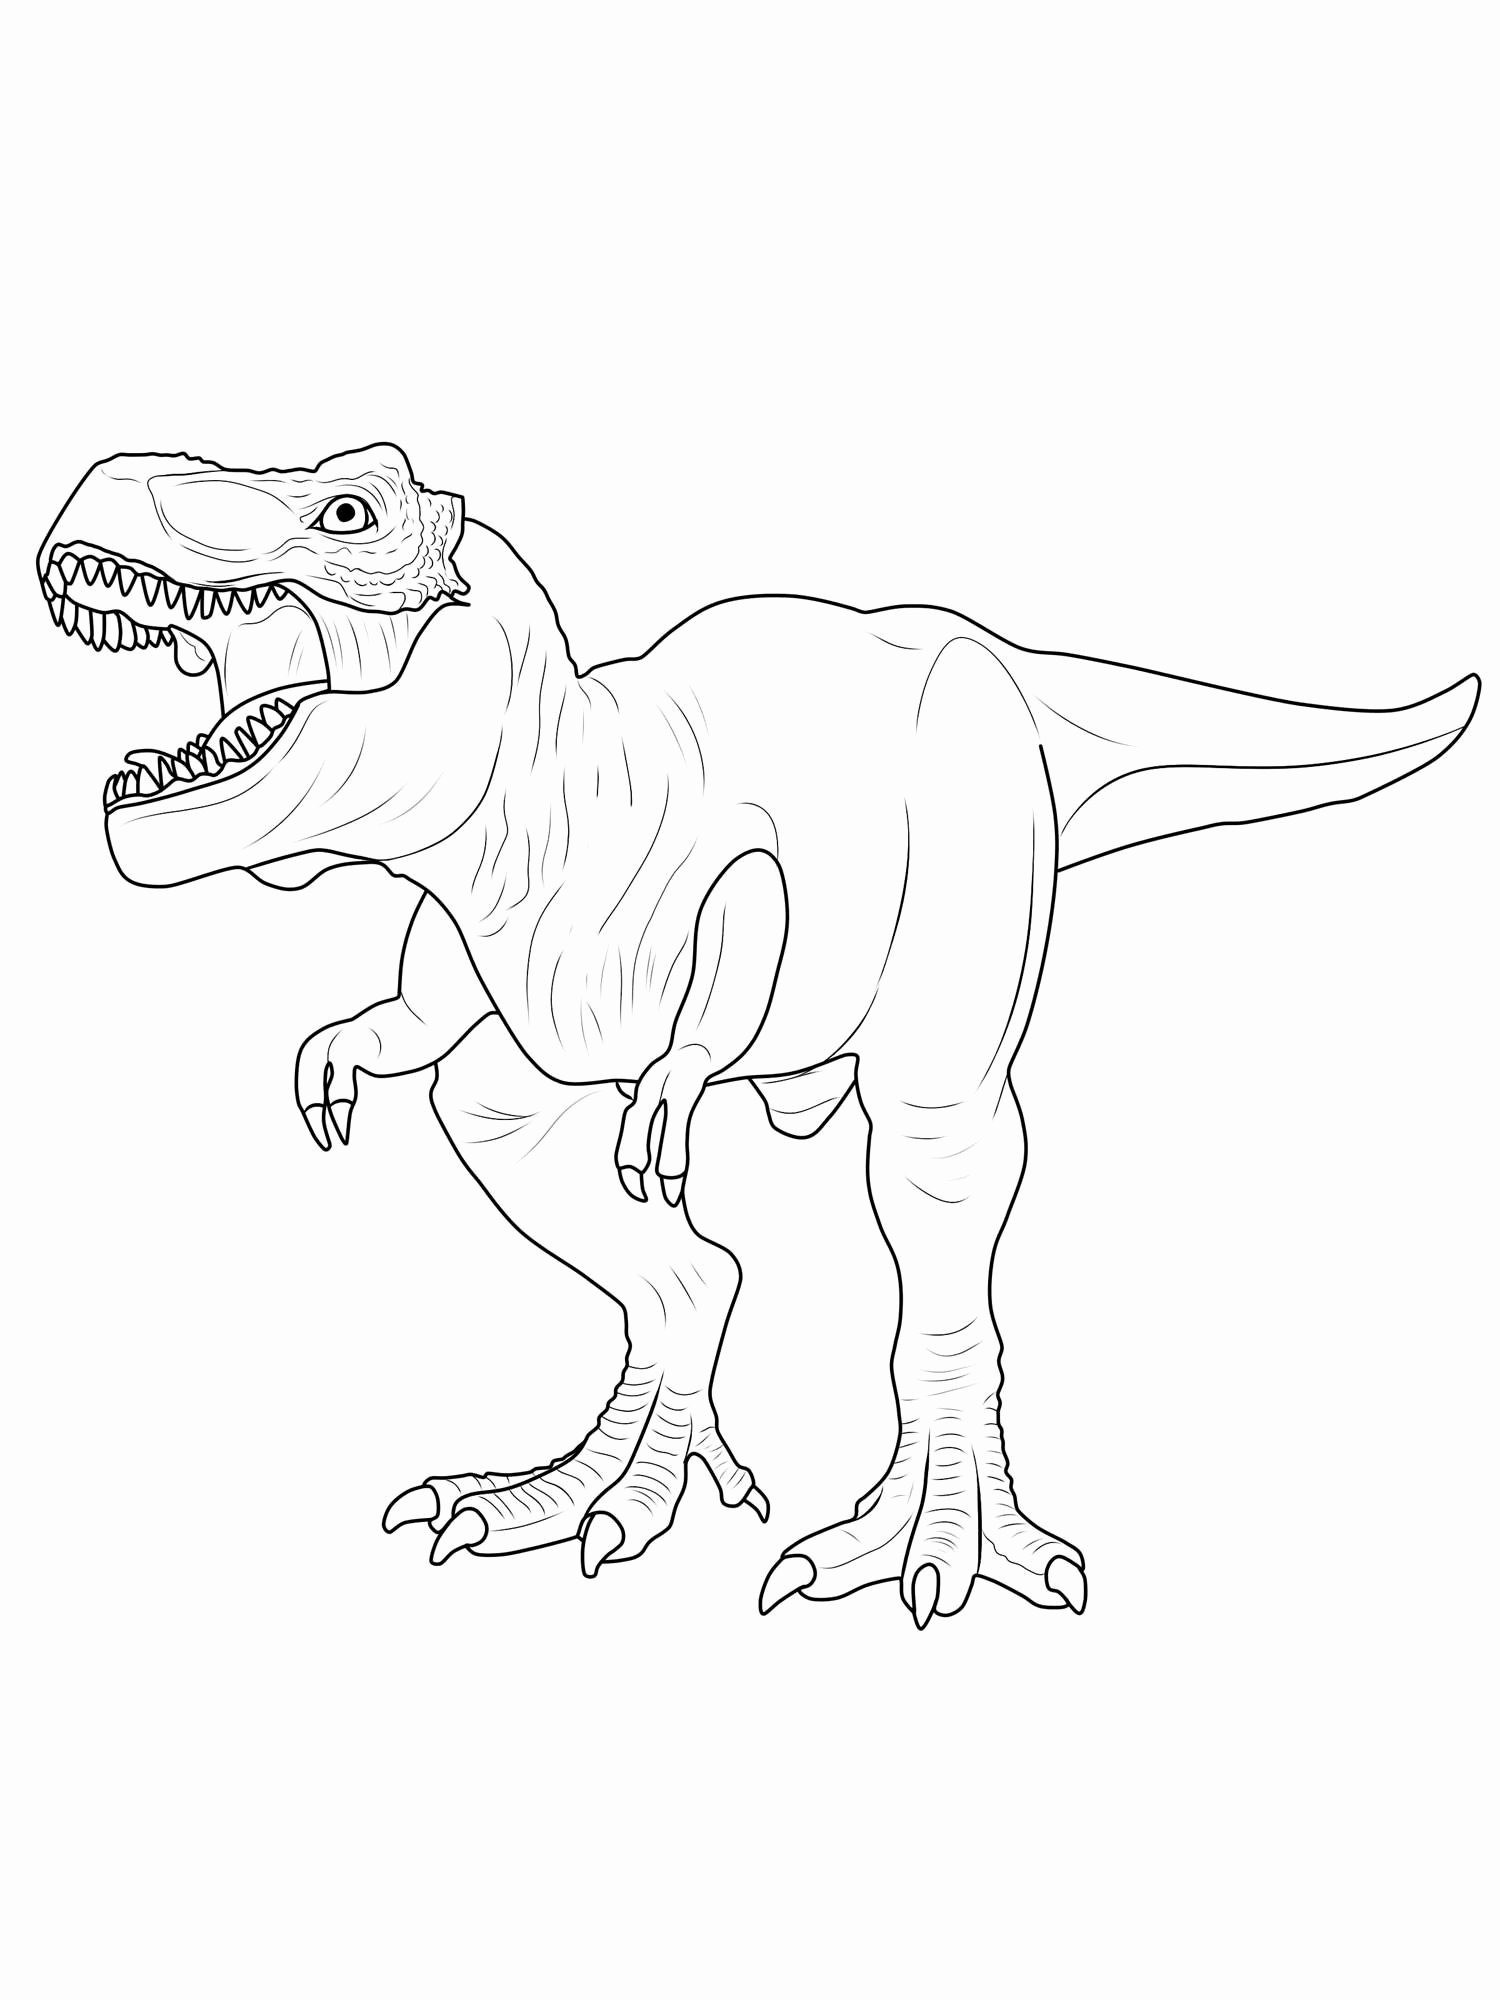 T Rex Ausmalbild Genial Coloriage Dinosaure T Rex Simple Pages to Color Printable New T Rex Bilder